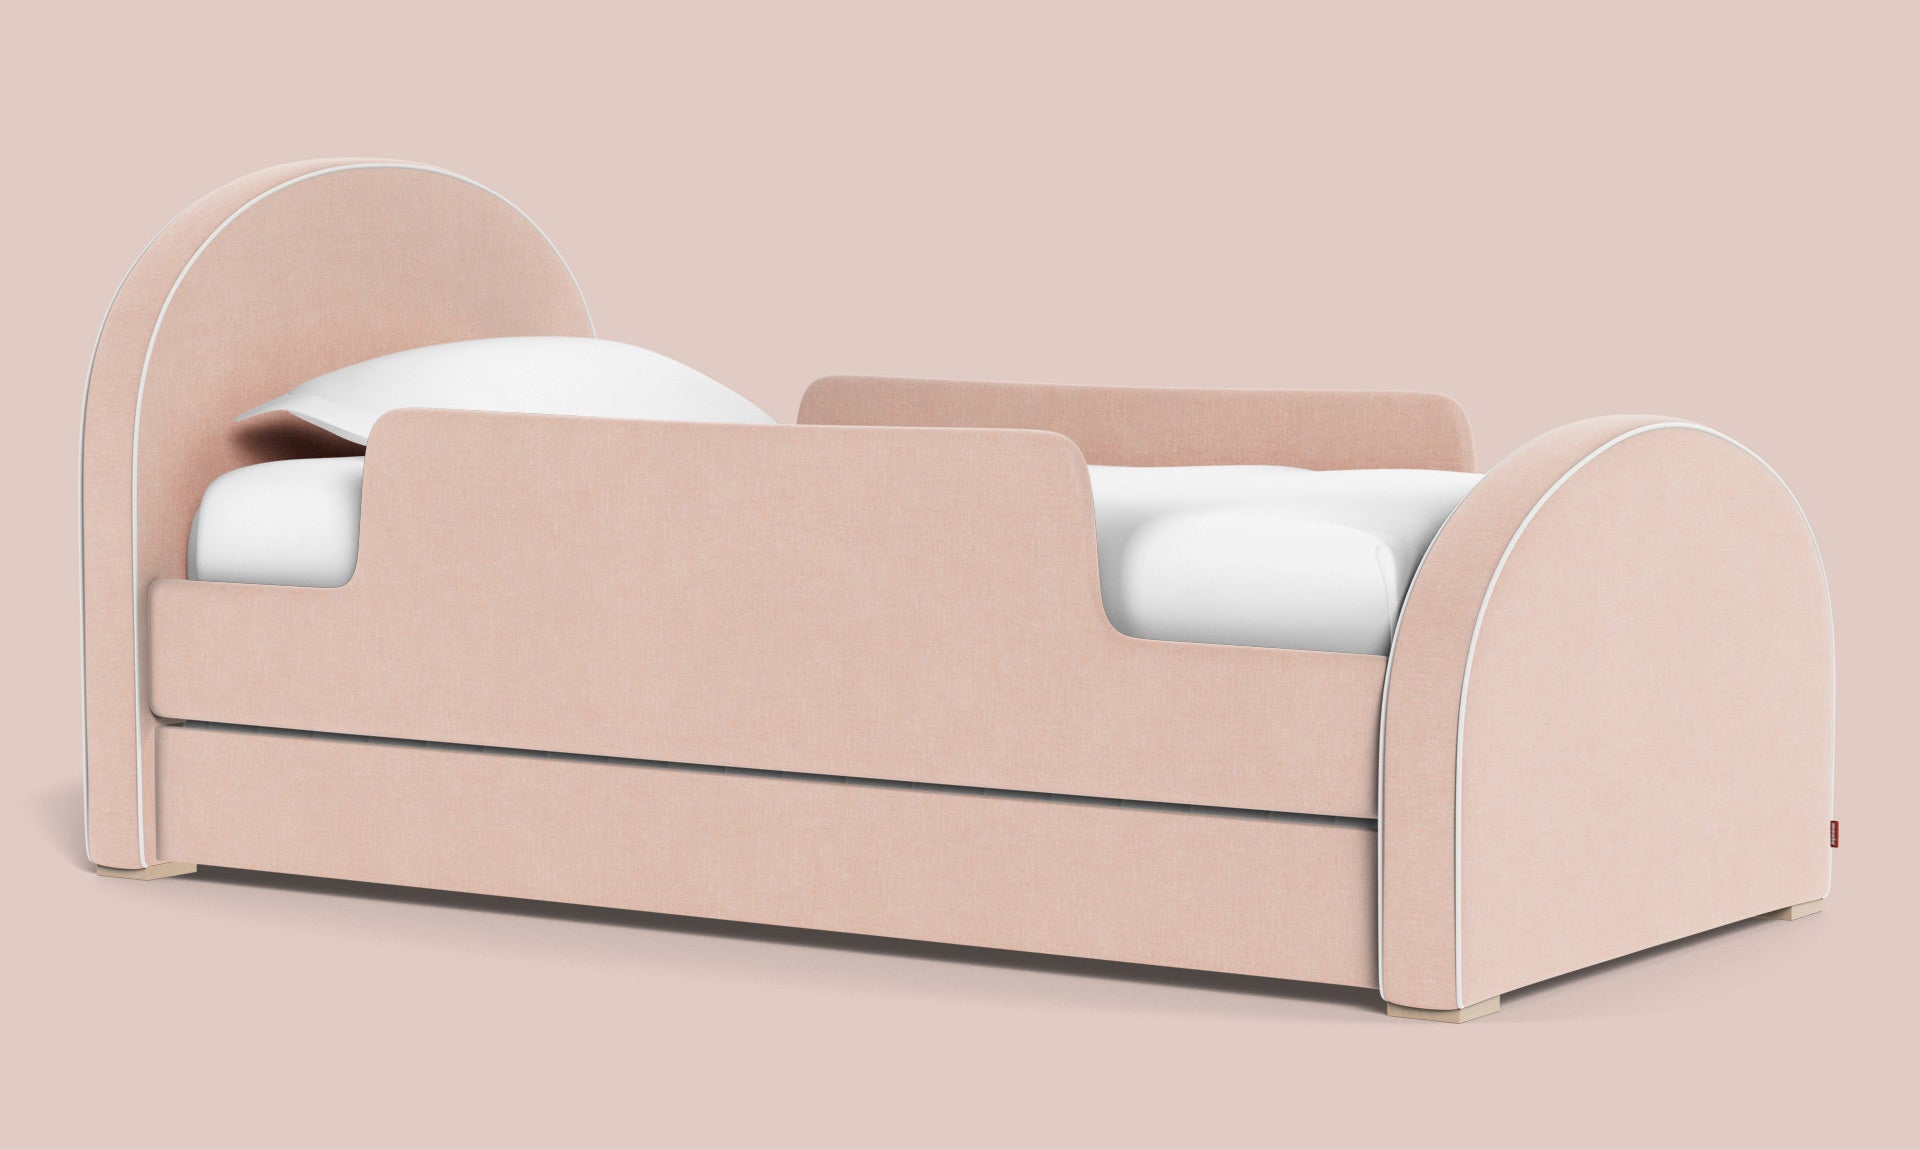 Luna Bed -modern twin and full bed with pull out trundle - arched headboard and footboard- contemporary furniture for your kid's room